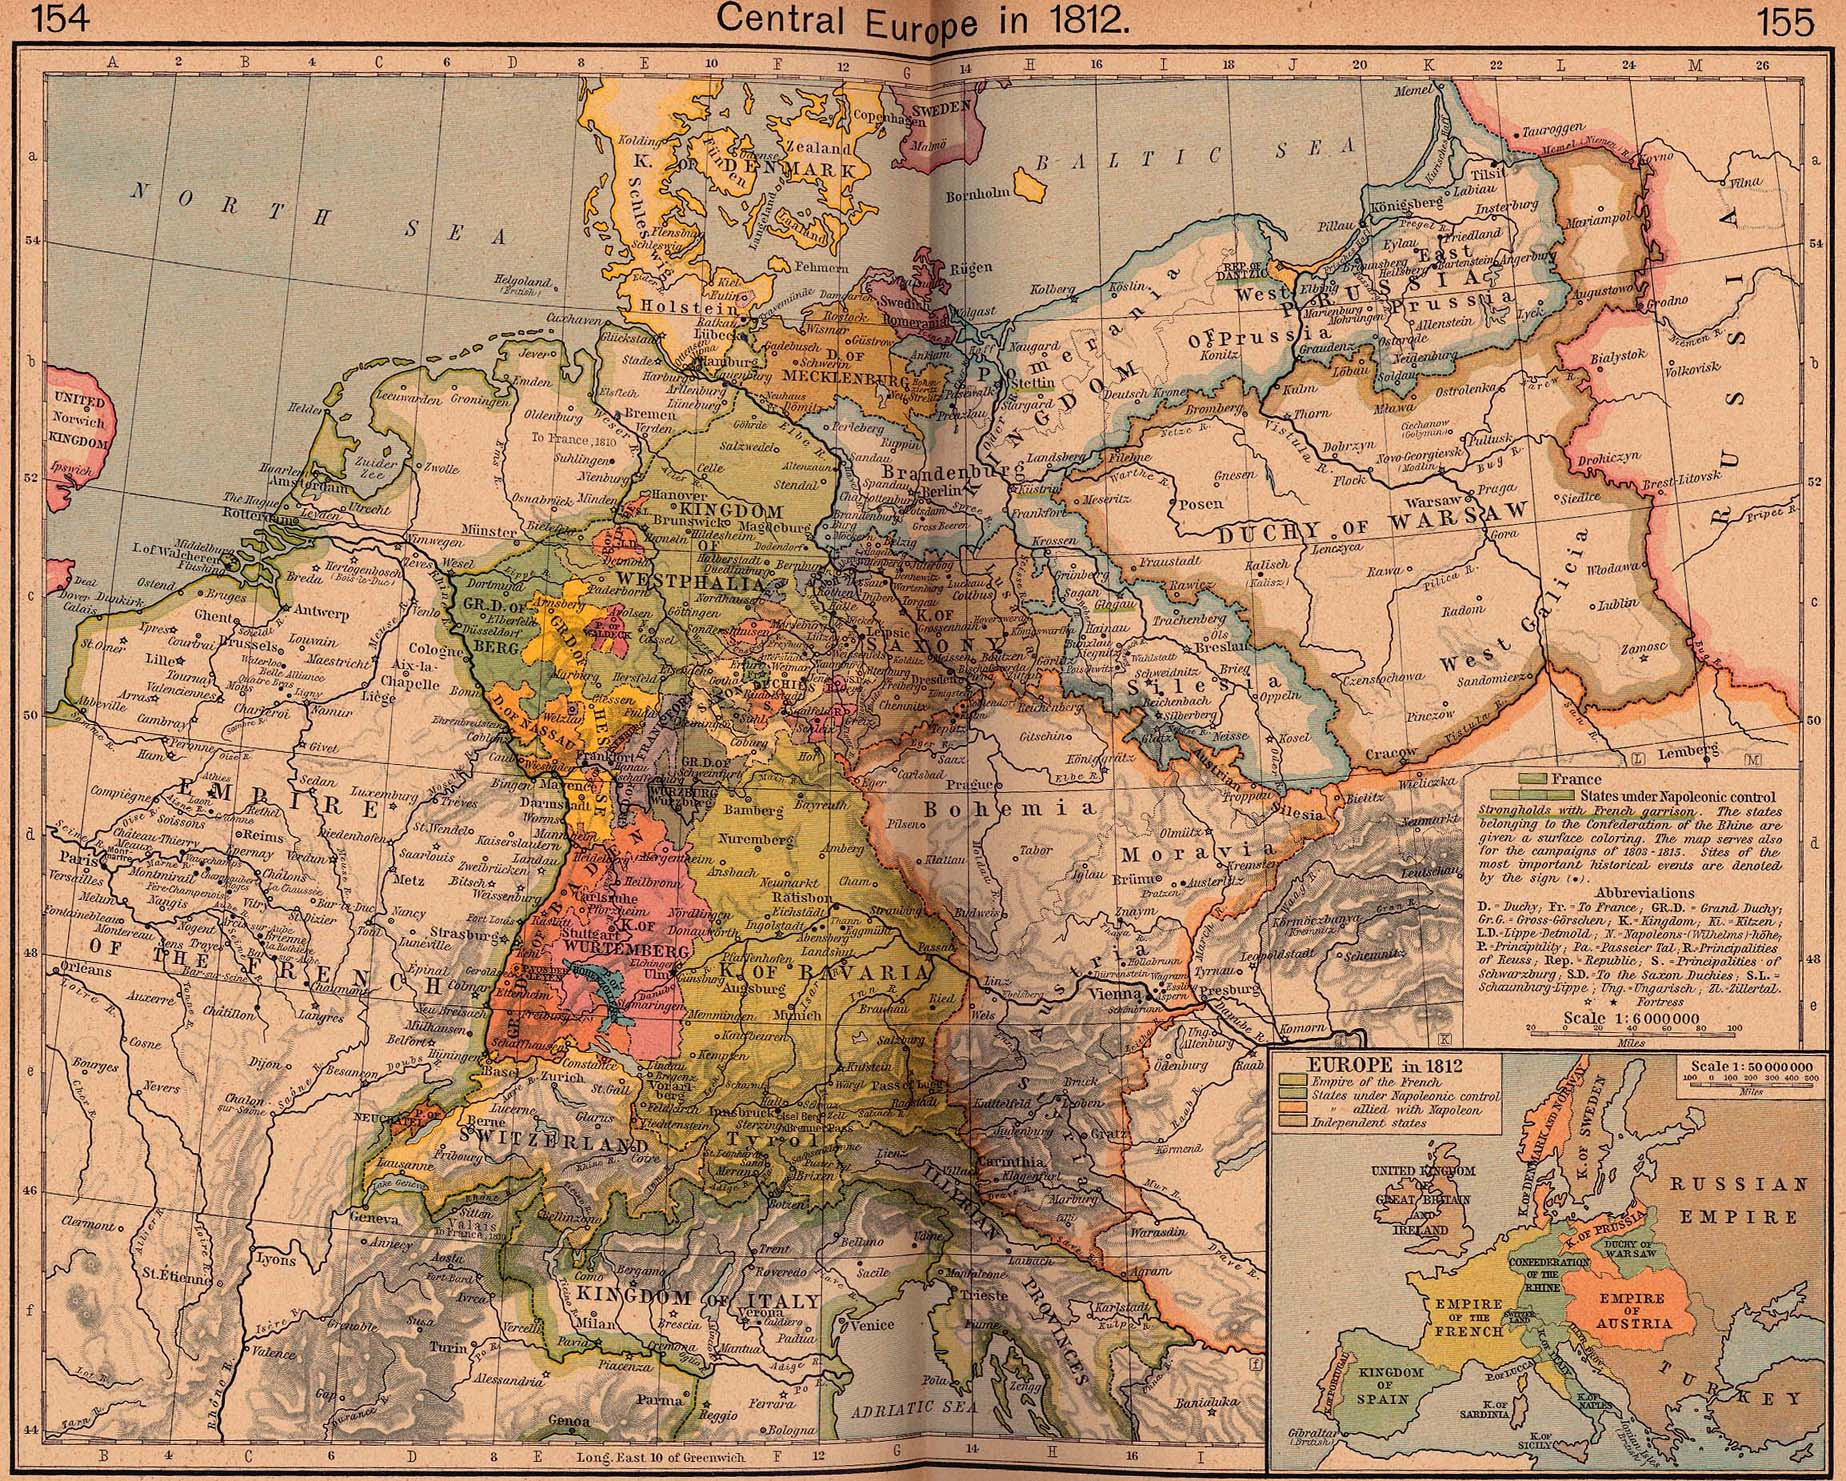 Central Europe in 1812